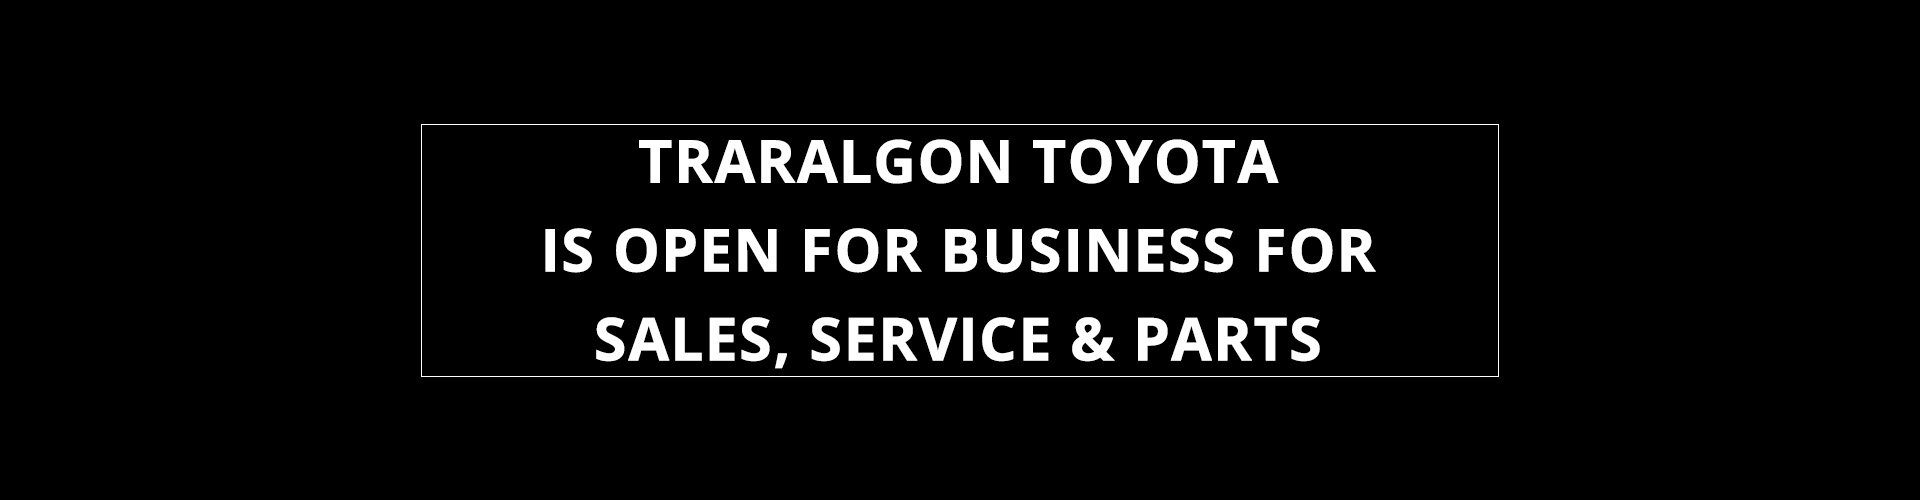 Traralgon Toyota - We're Open For Business